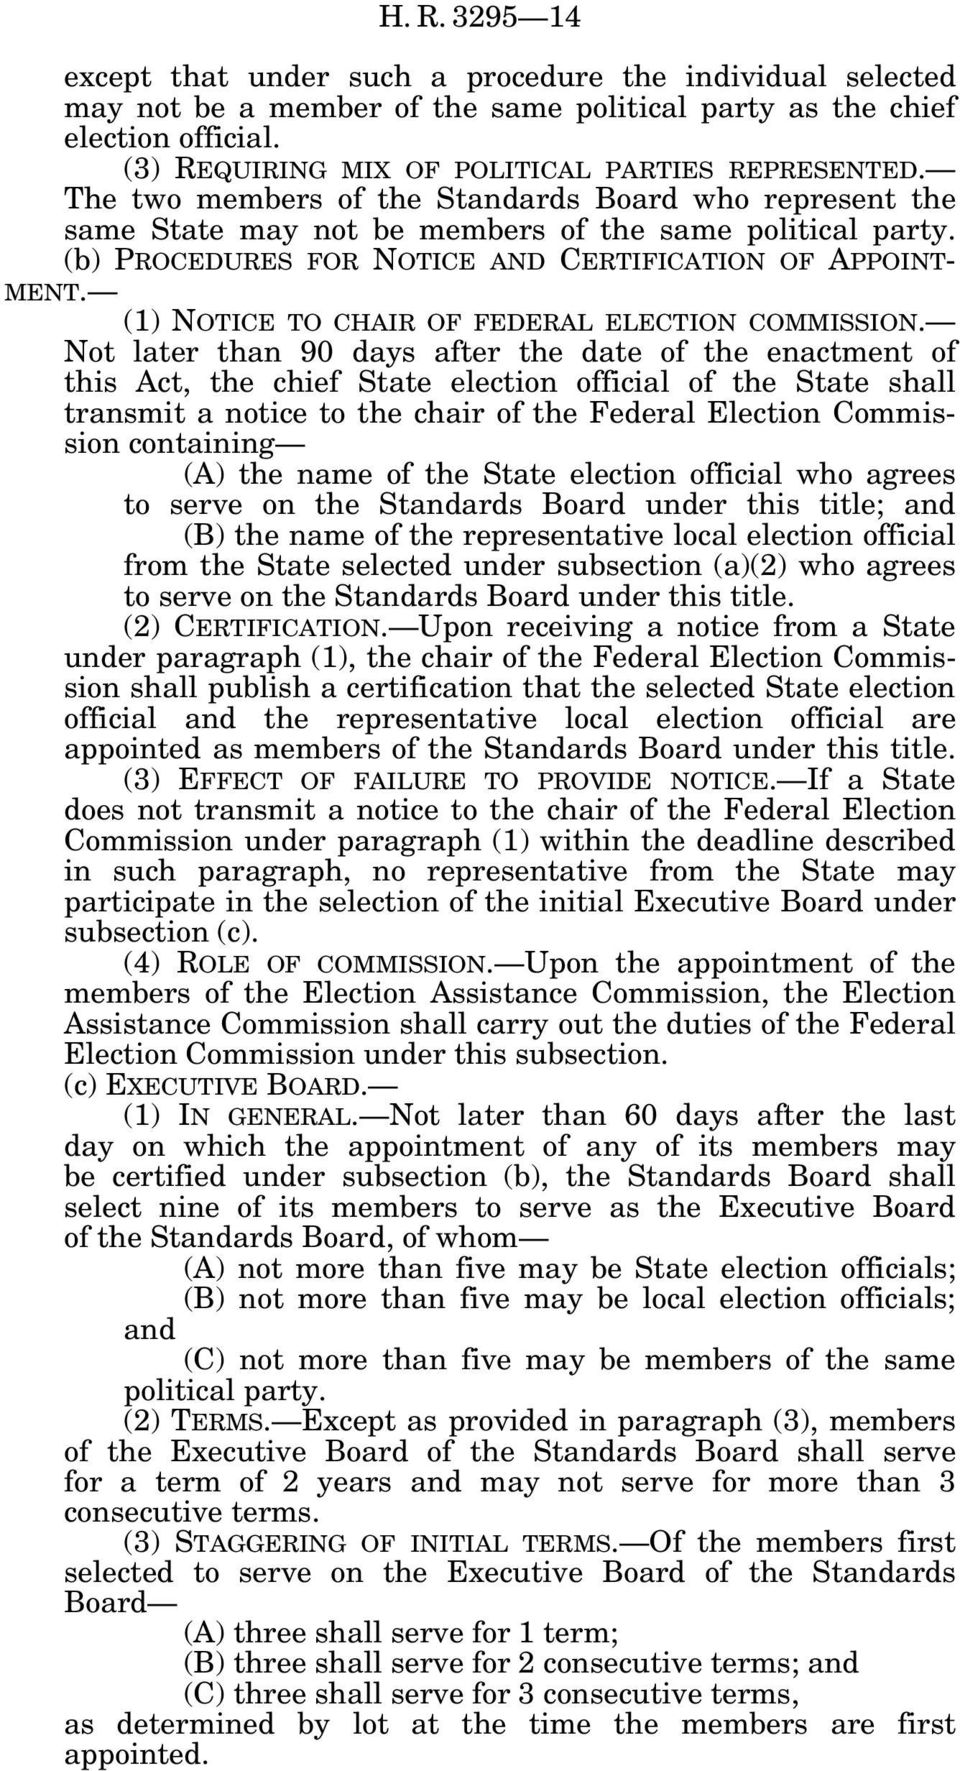 (b) PROCEDURES FOR NOTICE AND CERTIFICATION OF APPOINT- MENT. (1) NOTICE TO CHAIR OF FEDERAL ELECTION COMMISSION.